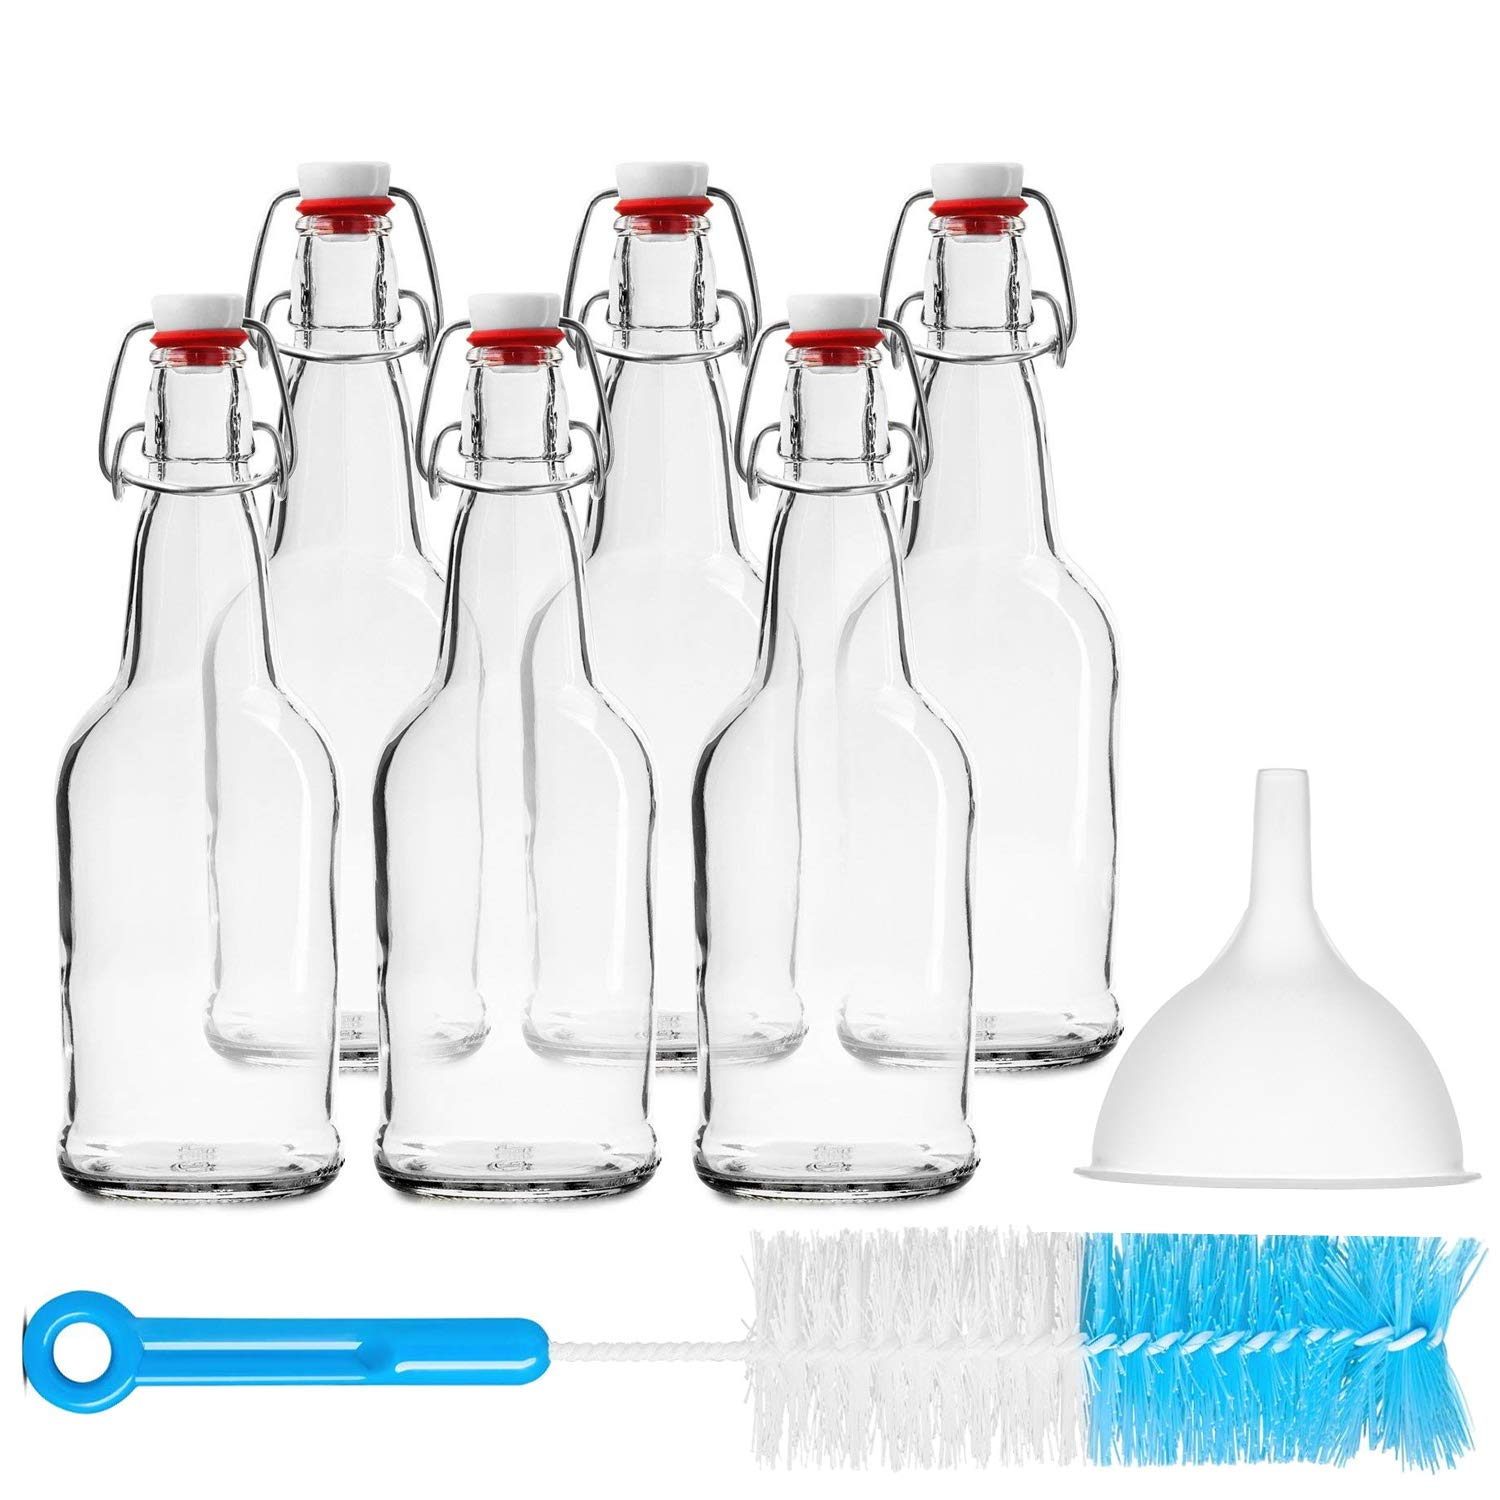 Chef's Star CASE OF 6-16 oz. EASY CAP Beer Bottles with Funnel and Cleaning Brush - CLEAR Chef's Star